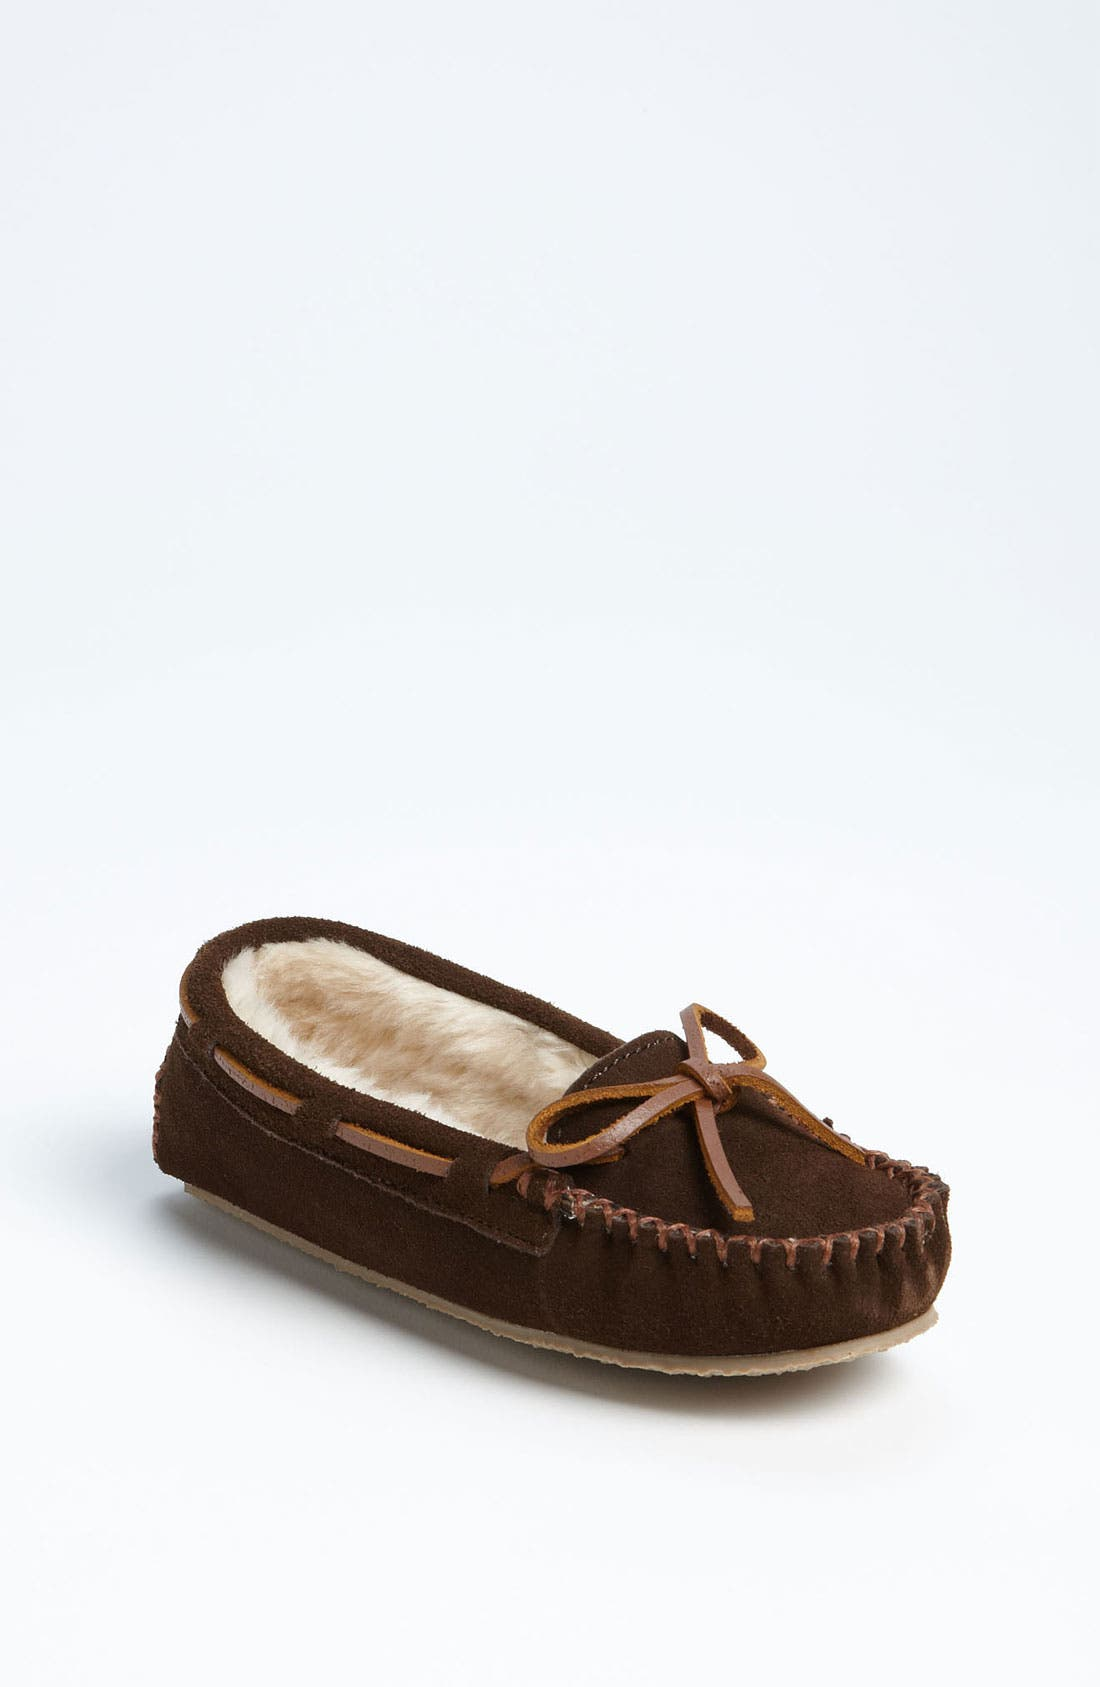 MINNETONKA 'Cassie' Slipper, Main, color, CHOCOLATE